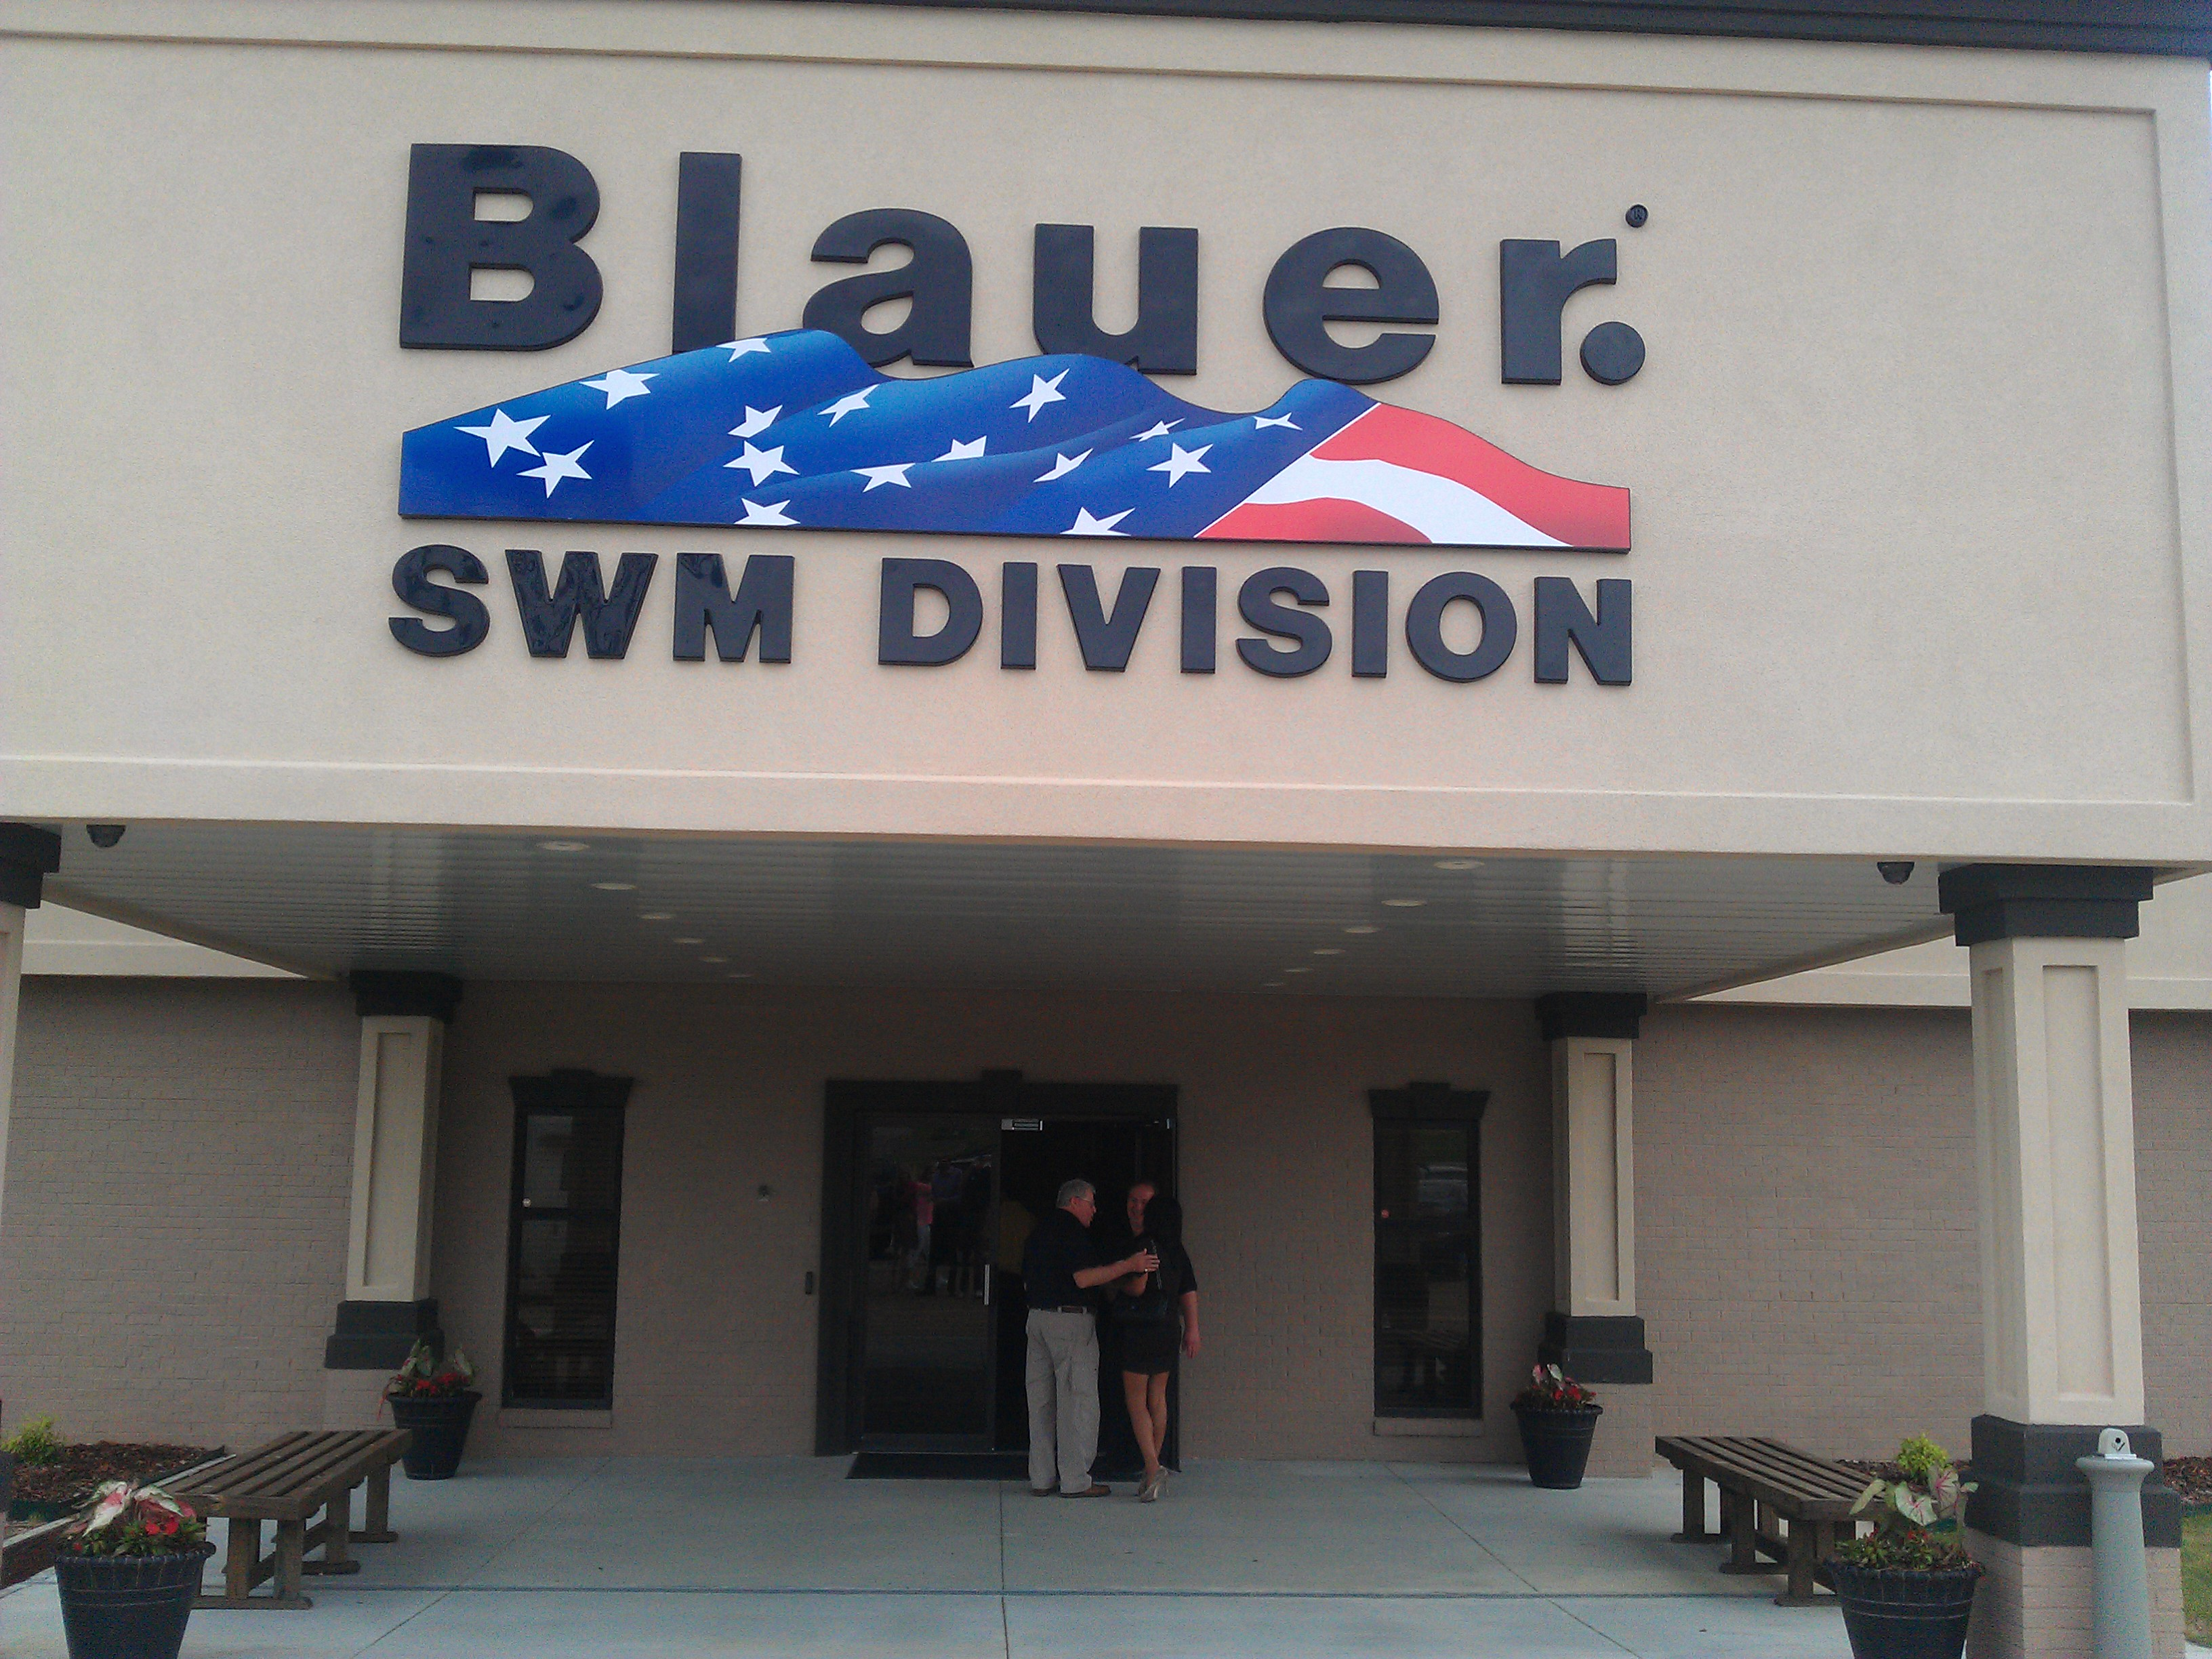 Thank you to Blauer for a great factory visit!